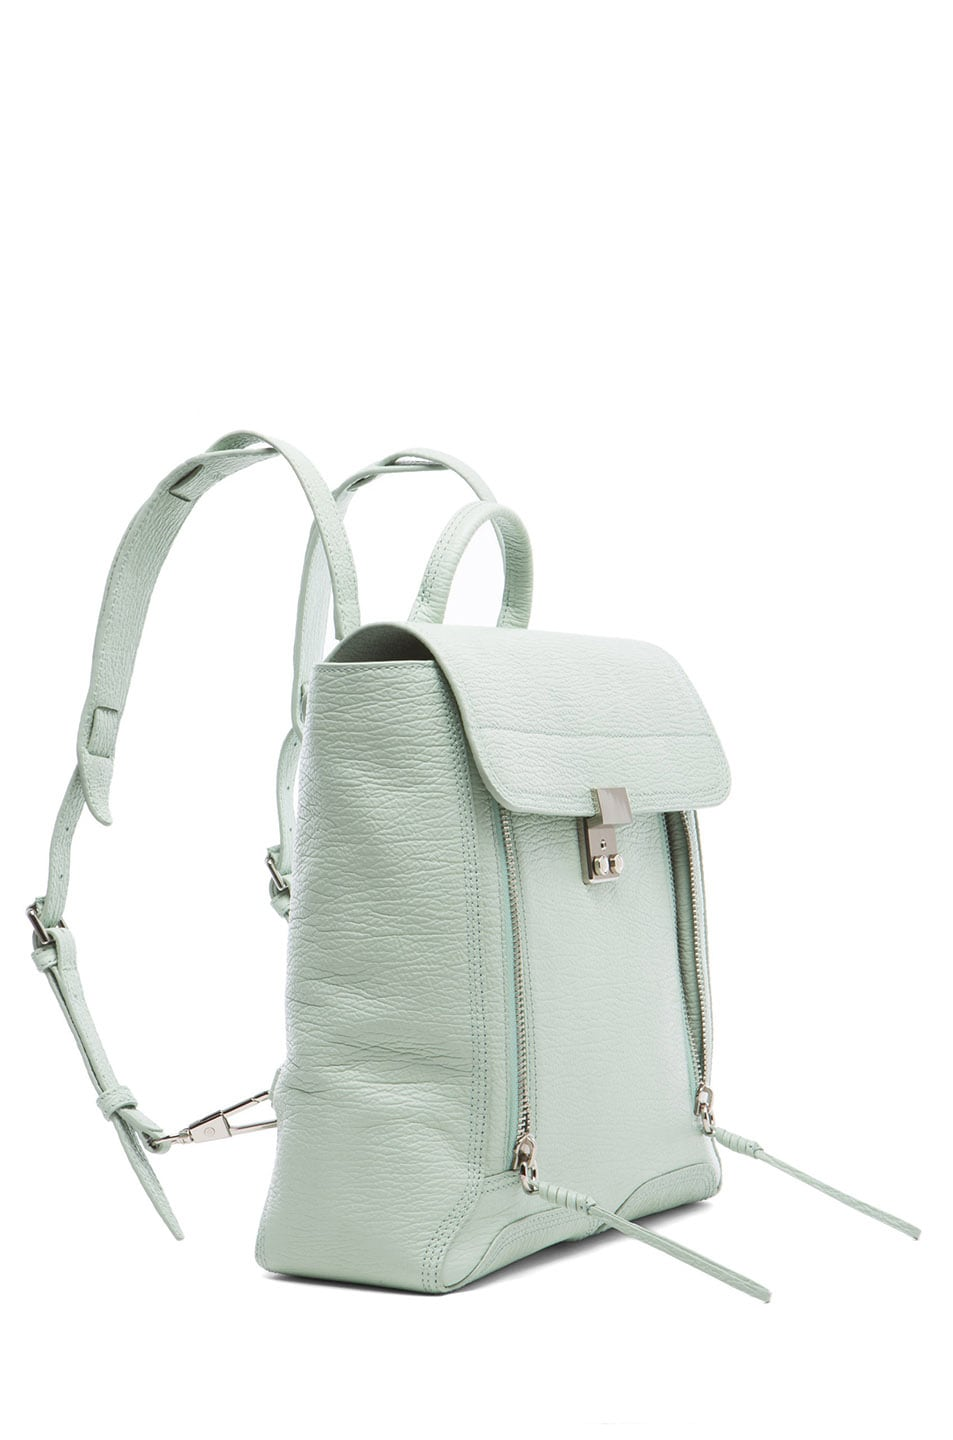 Image 3 of 3.1 phillip lim Pashli Backpack in Sage